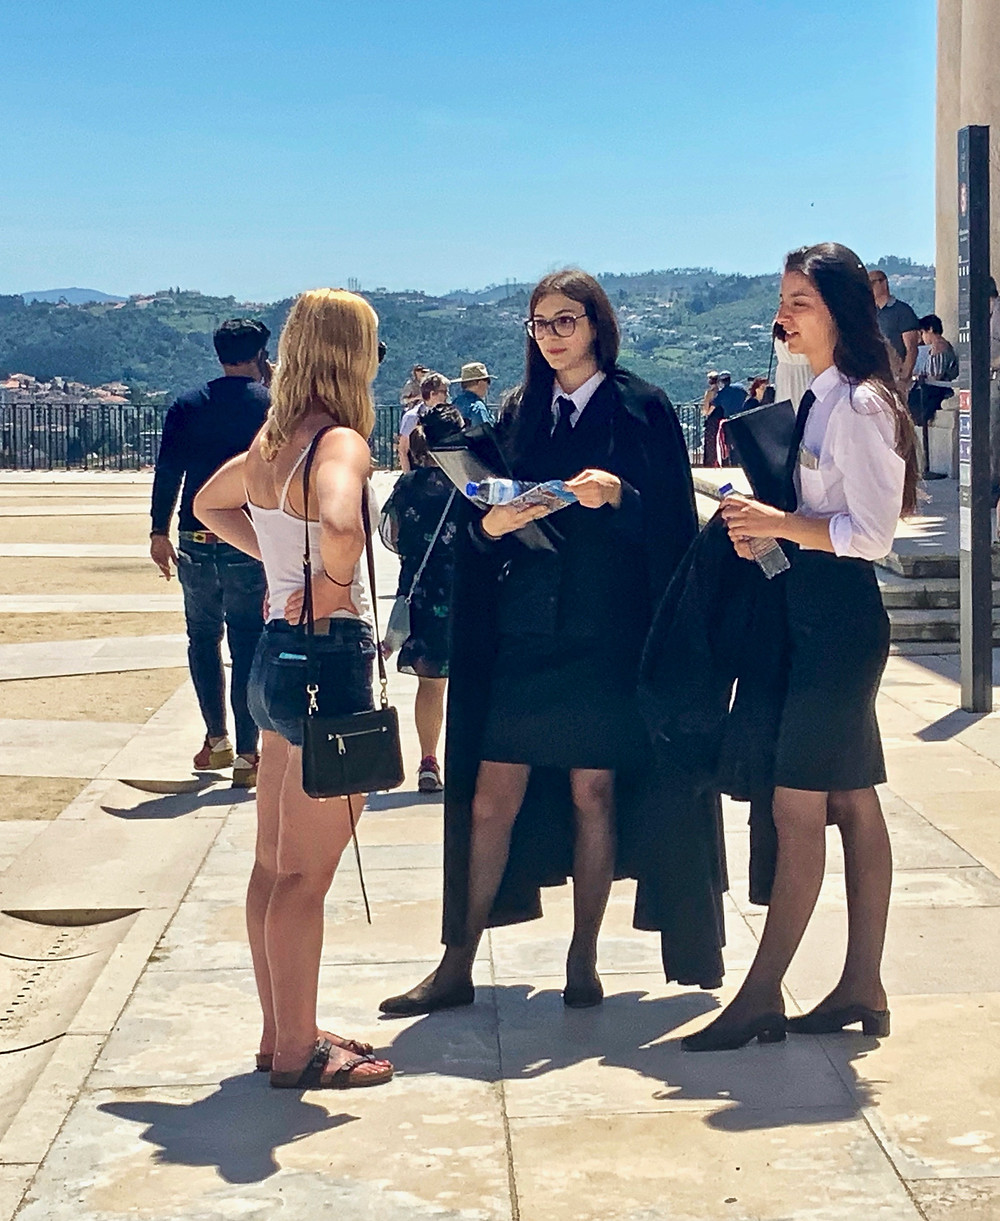 my daughter chatting with some black caped Coimbra students